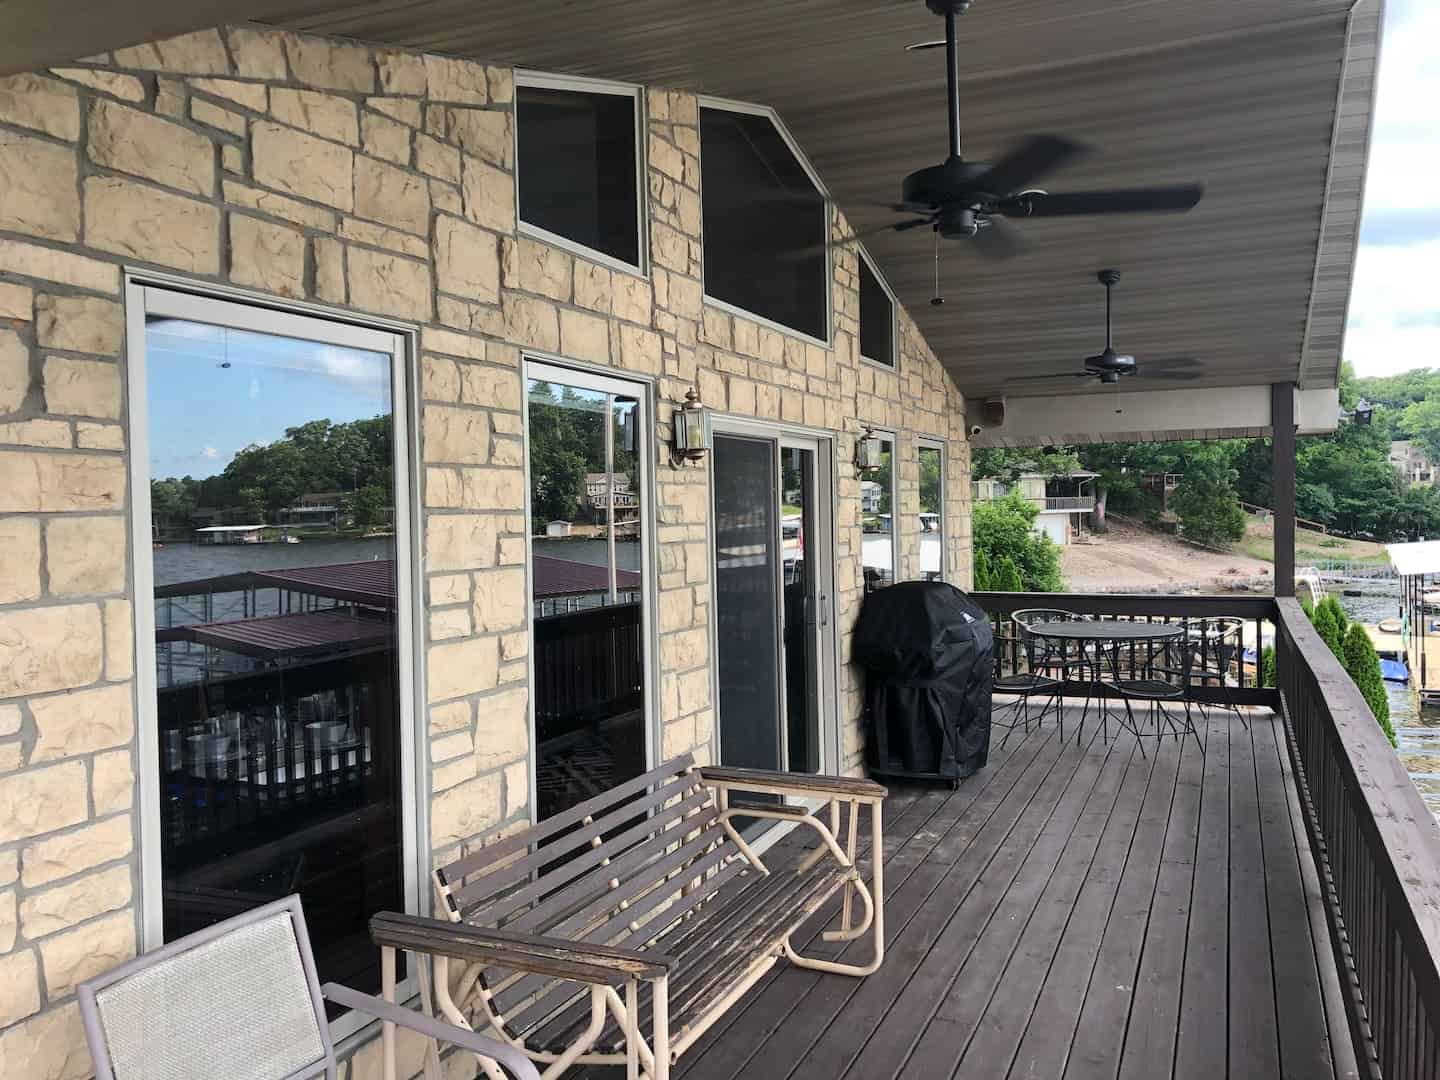 Image of Airbnb rental in Lake of the Ozarks, Missouri